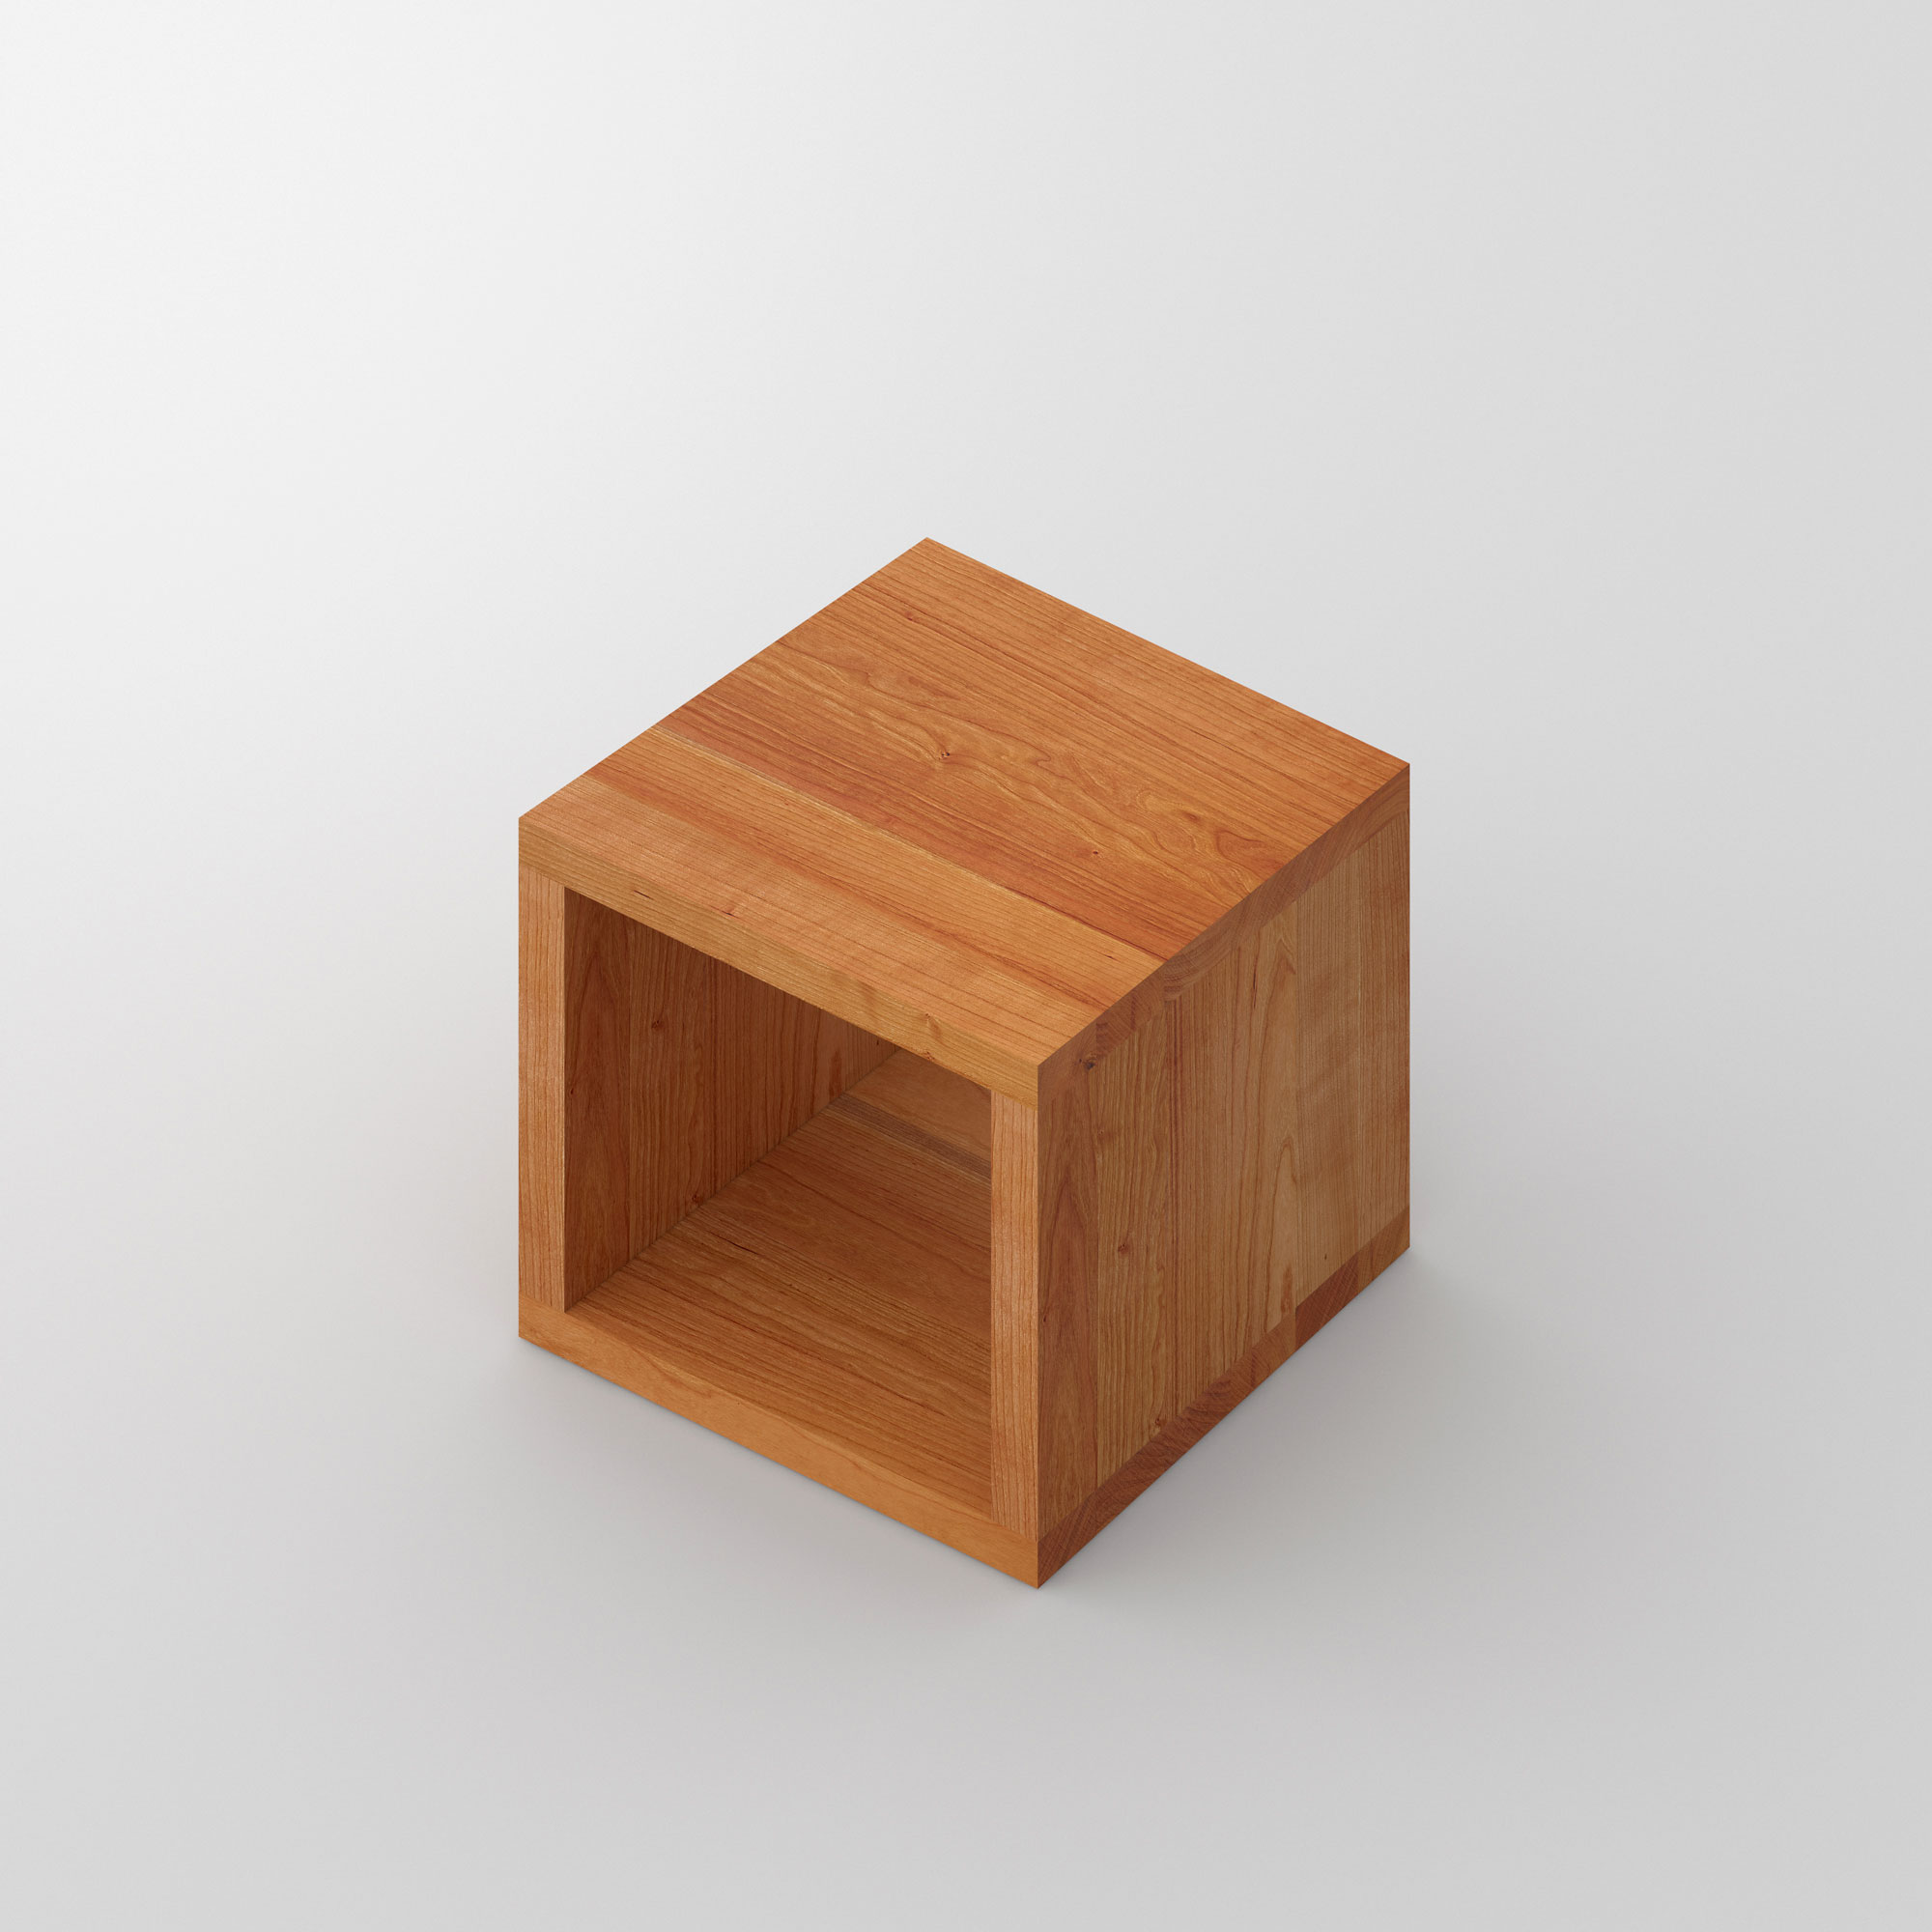 Multifunctional Coffee Table MENA B 4 cam3 custom made in solid wood by vitamin design